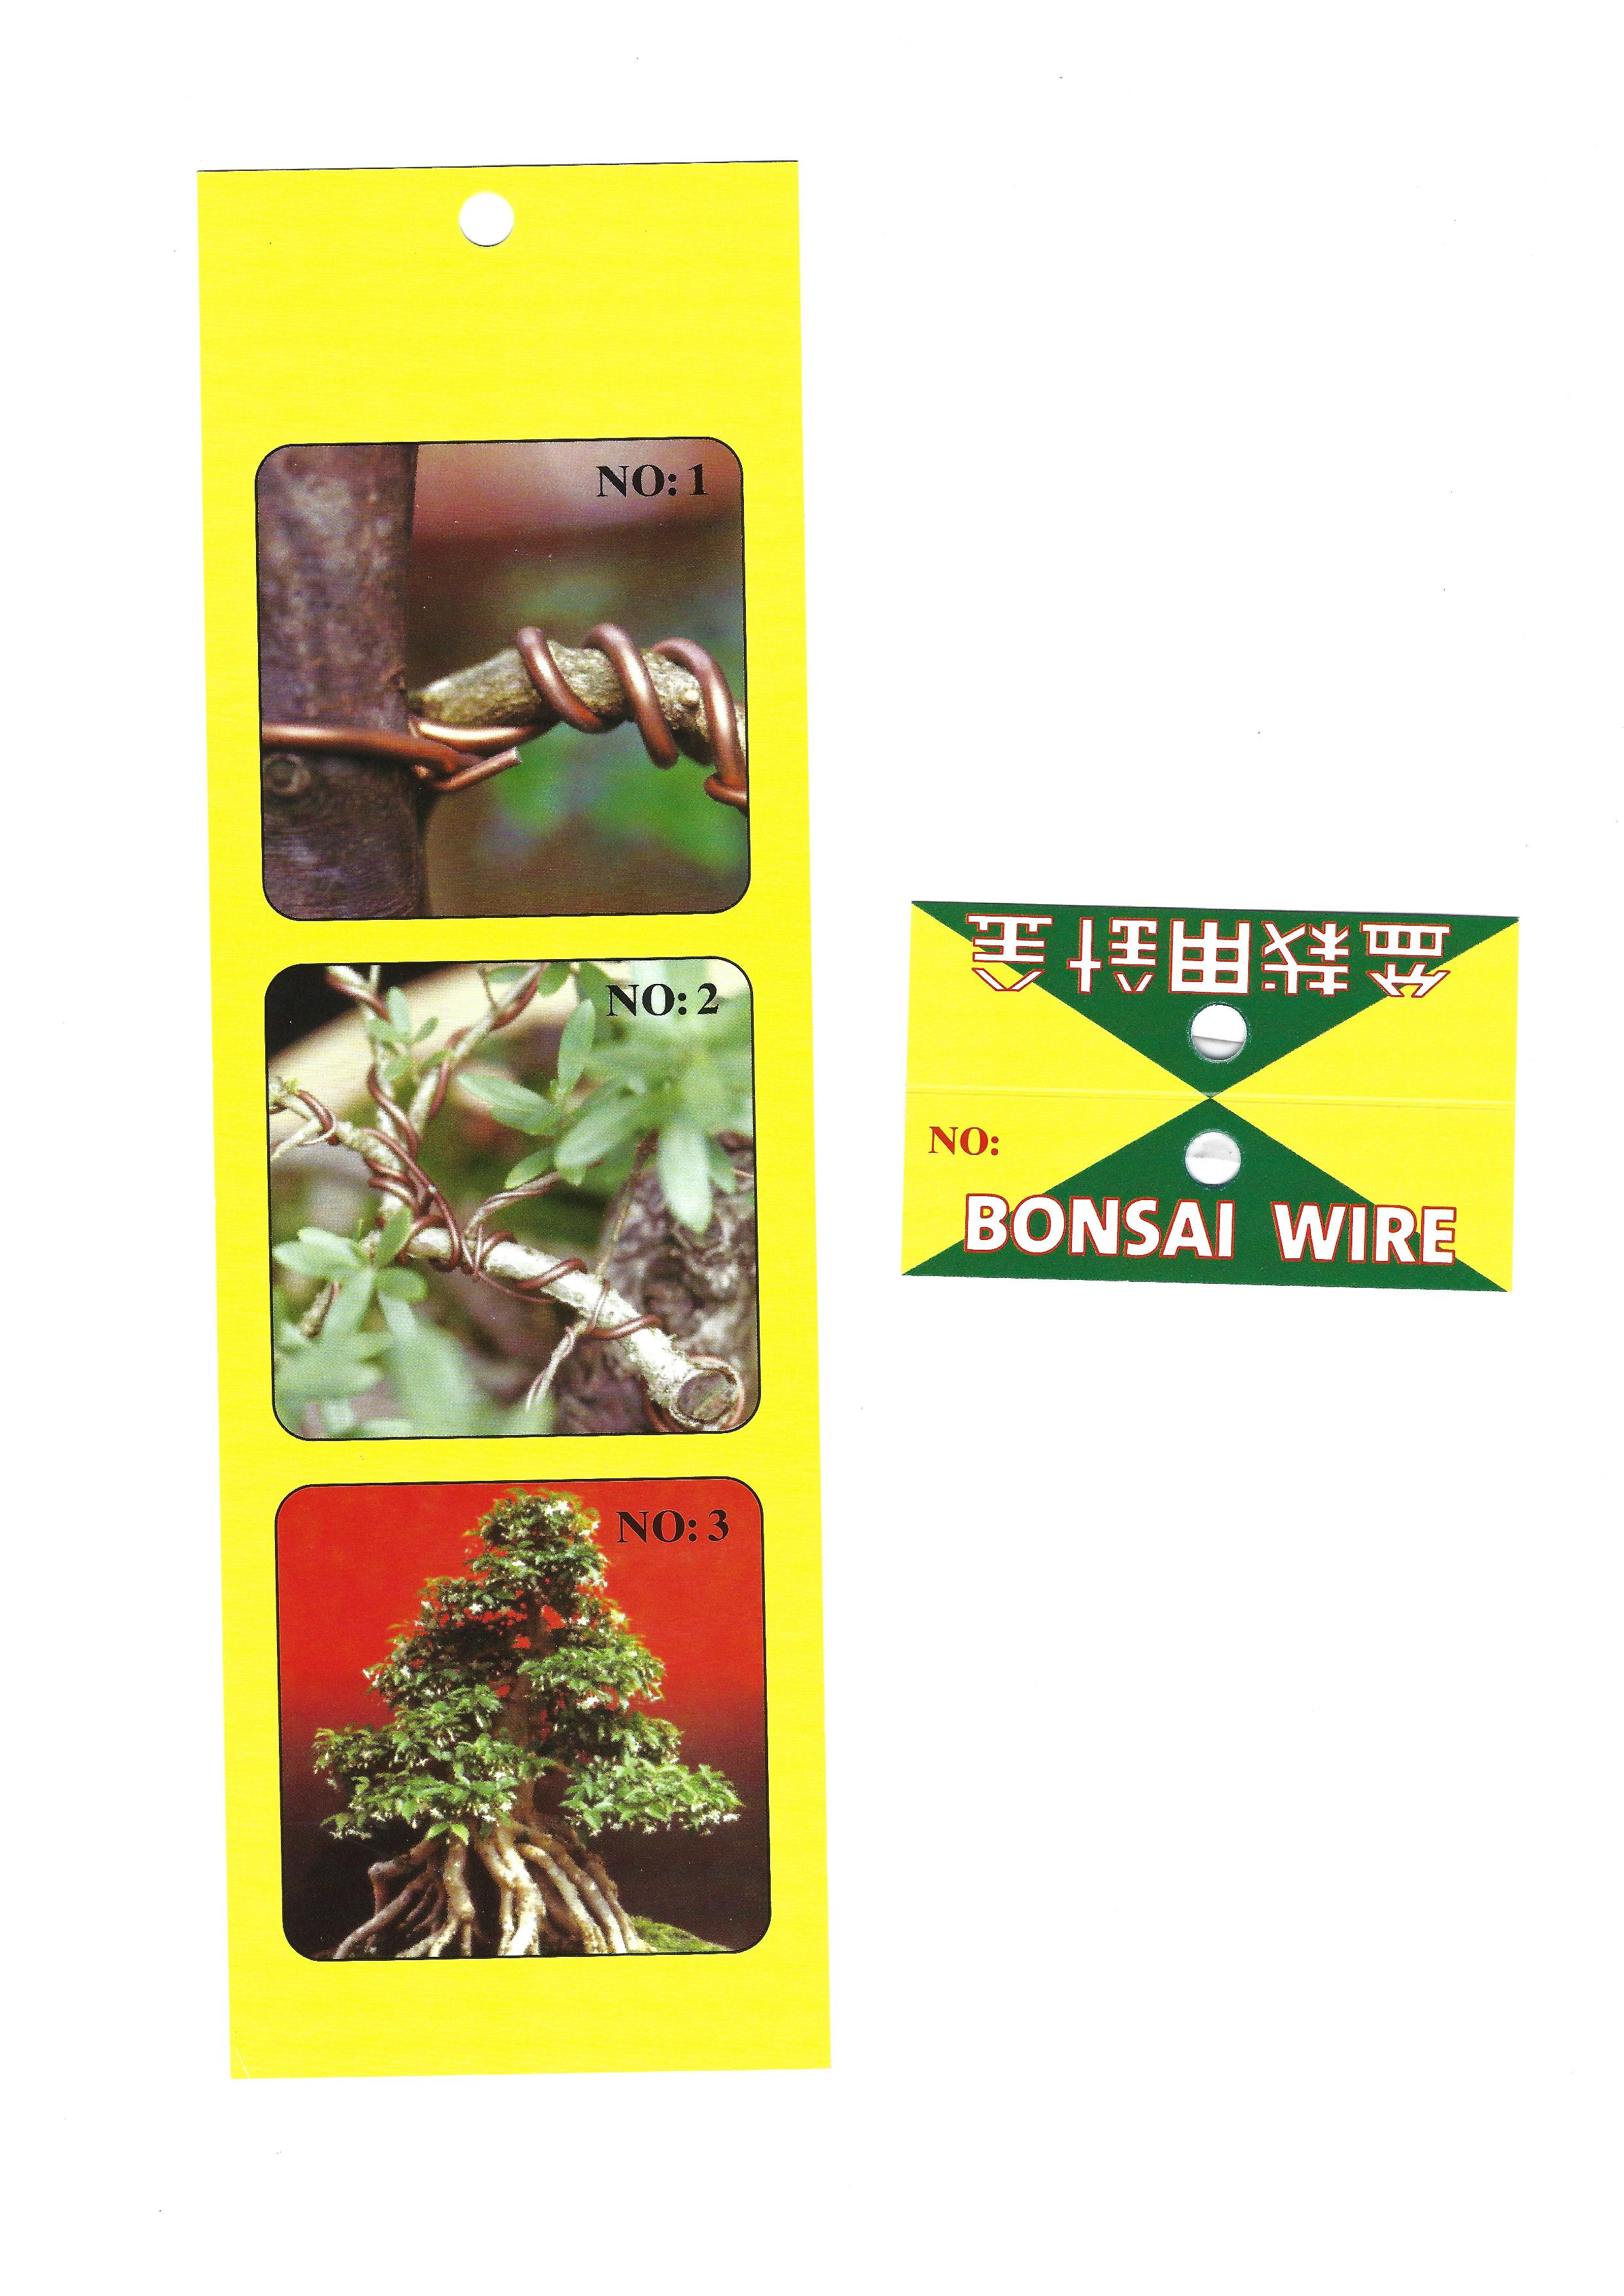 Ferti Products M Sdn Bhd Wiring Bonsai Branches Copper Wires Made Specifically For Bending Tree Comes With Different Thickness Size No 1 Is 45 Mm 2 35 3 25